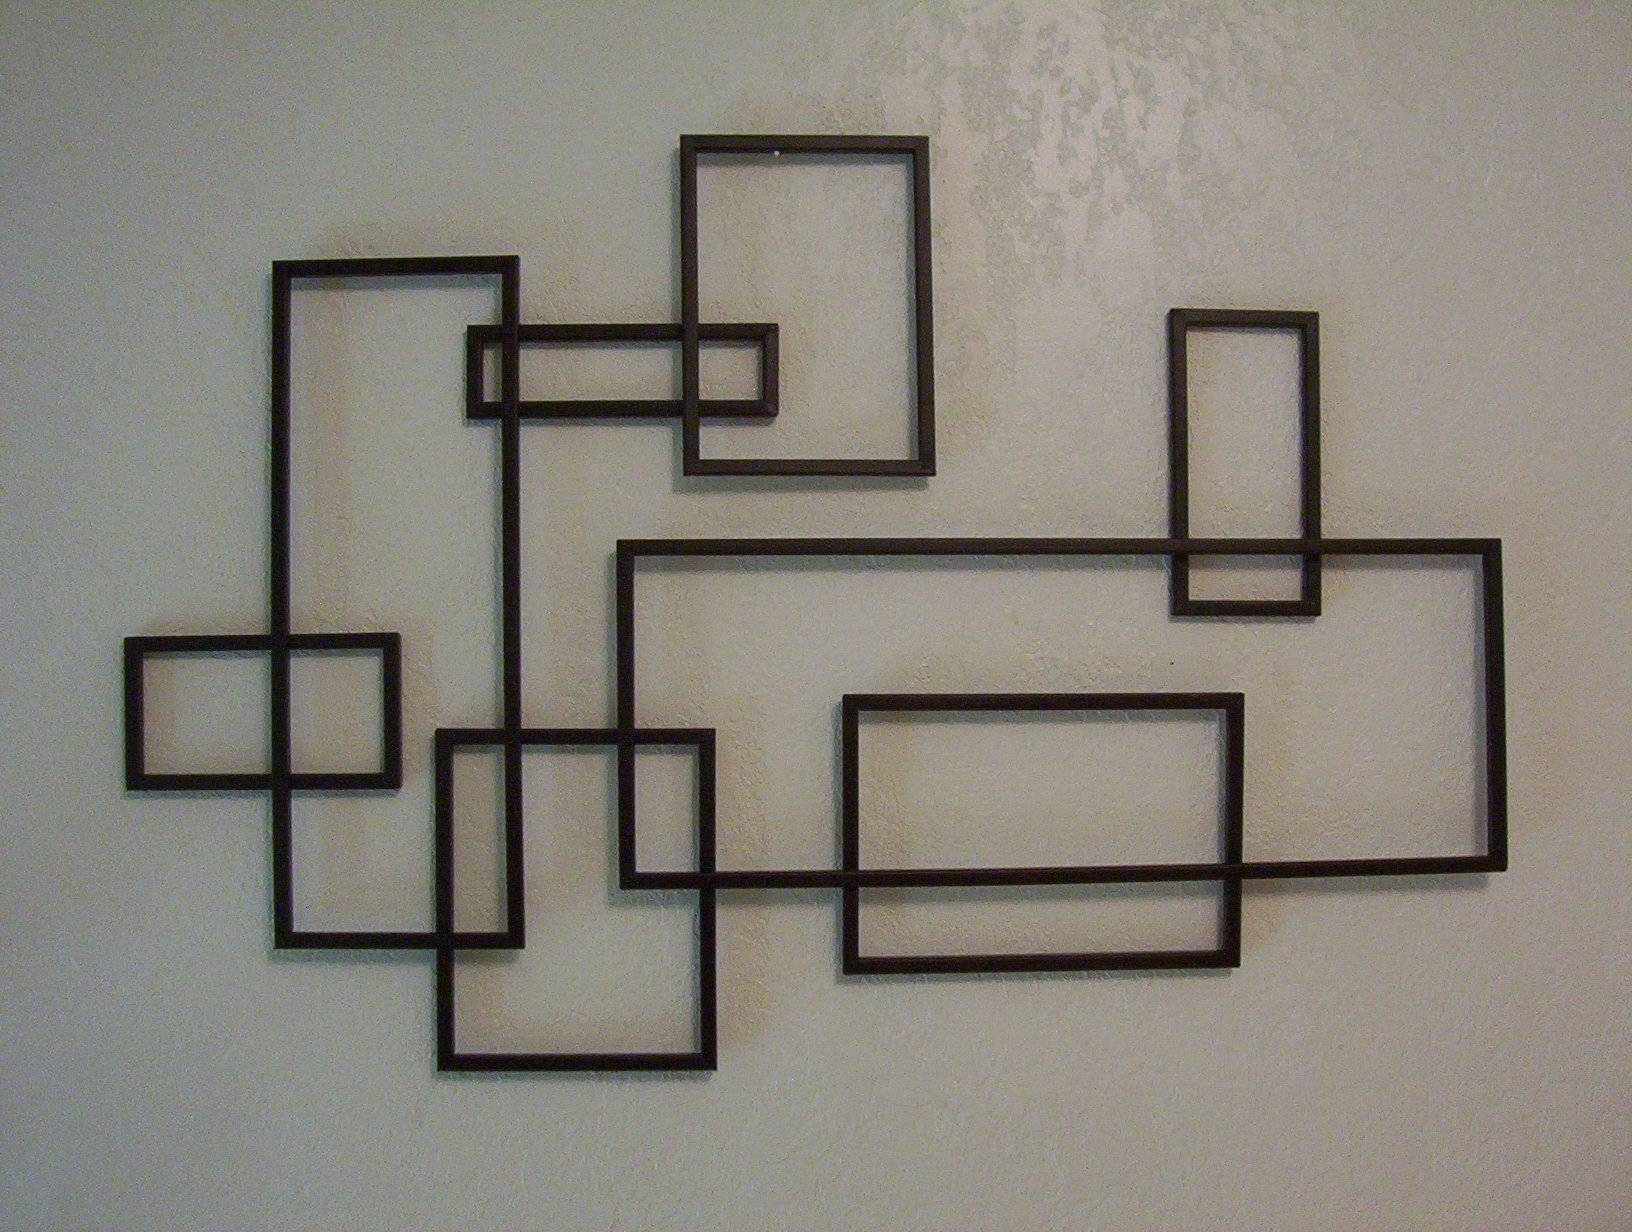 Wall Art Designs: Black Metal Wall Art Mid Century Modern De Stijl Intended For Newest Black Metal Wall Art Decor (Gallery 8 of 20)